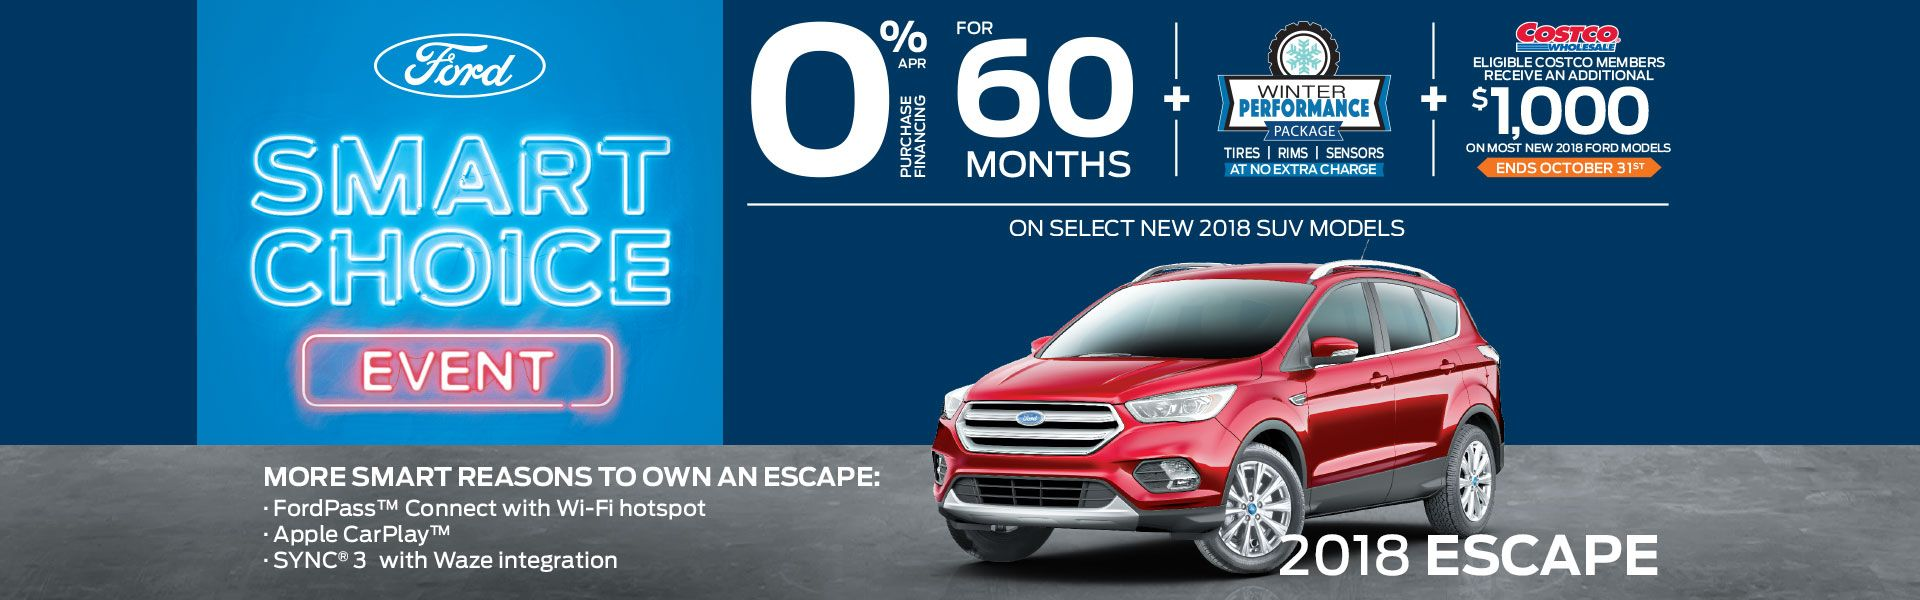 Pin by City Ford on Suv